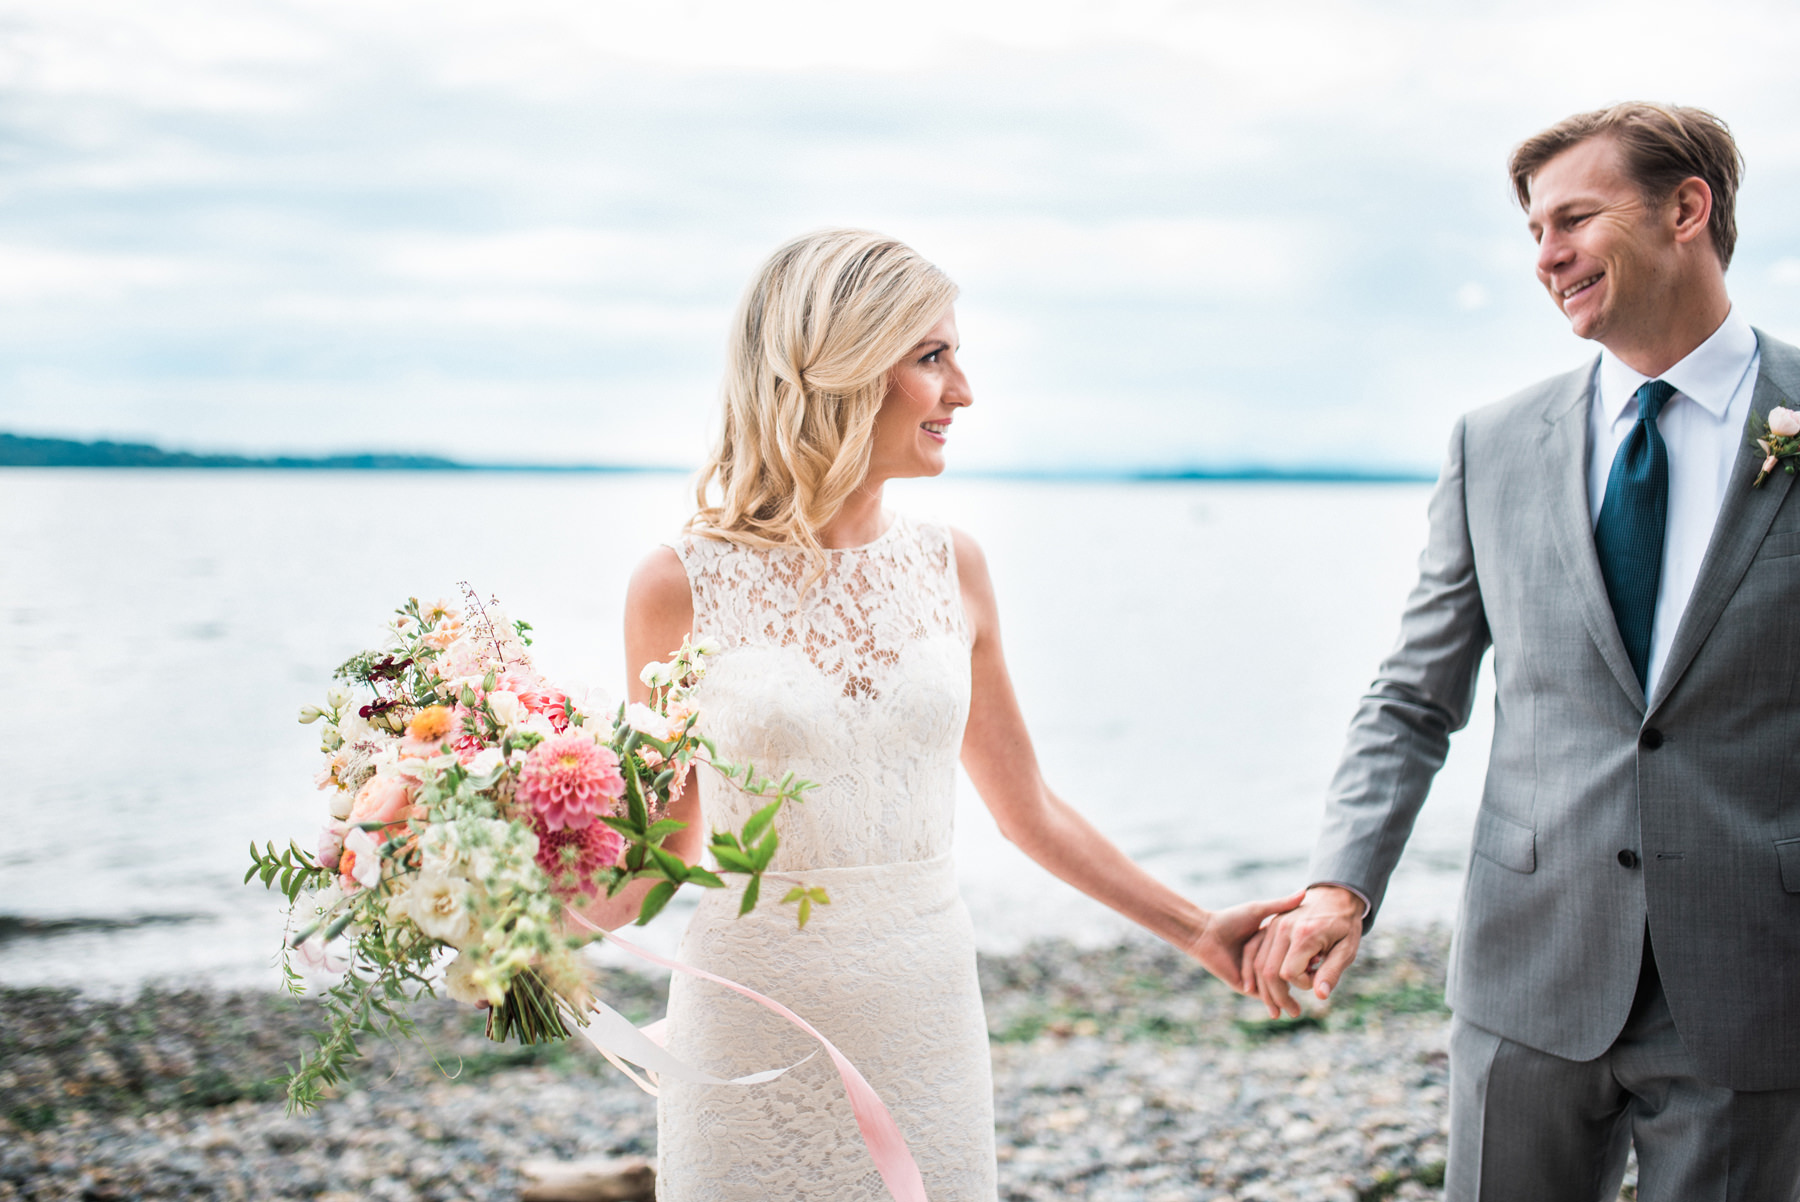 182-wedding-couple-walking-on-driftwood-holding-flowers-by-floret-floral.jpg